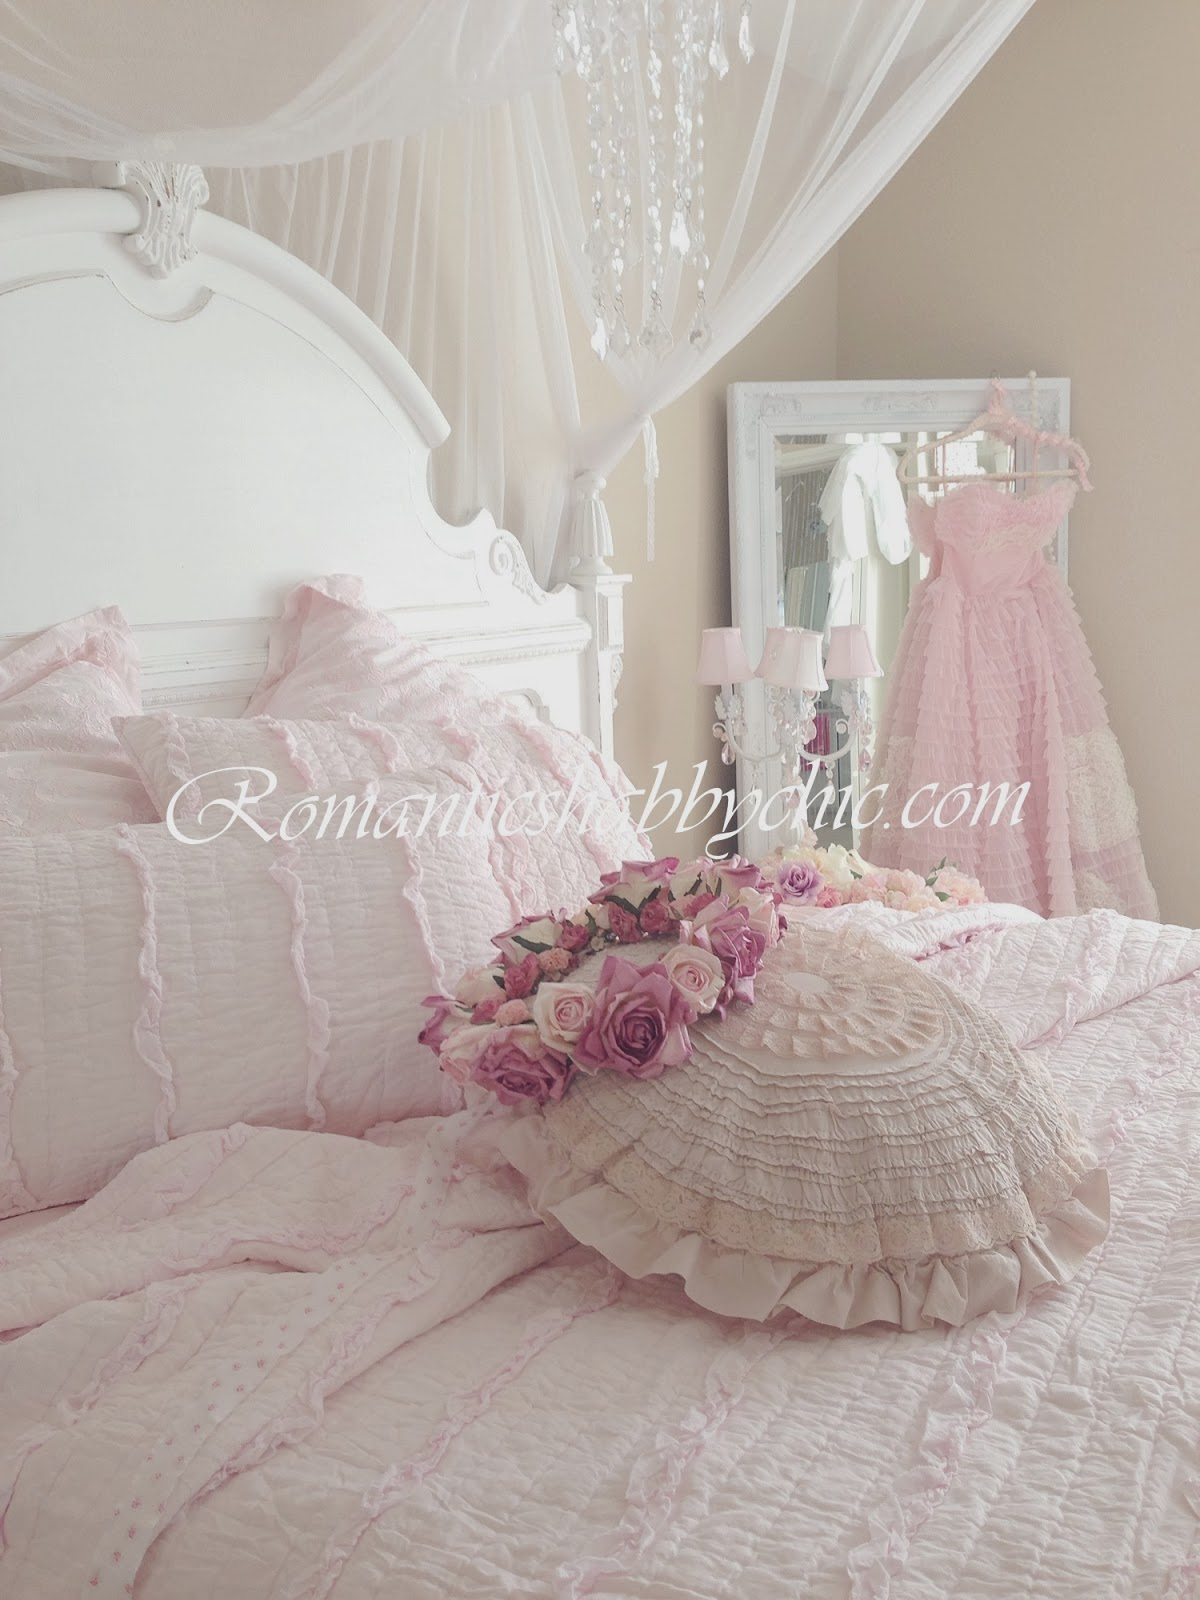 my shabby chic home romantik evim romantik ev romantic shabby chic pink shabby chic. Black Bedroom Furniture Sets. Home Design Ideas